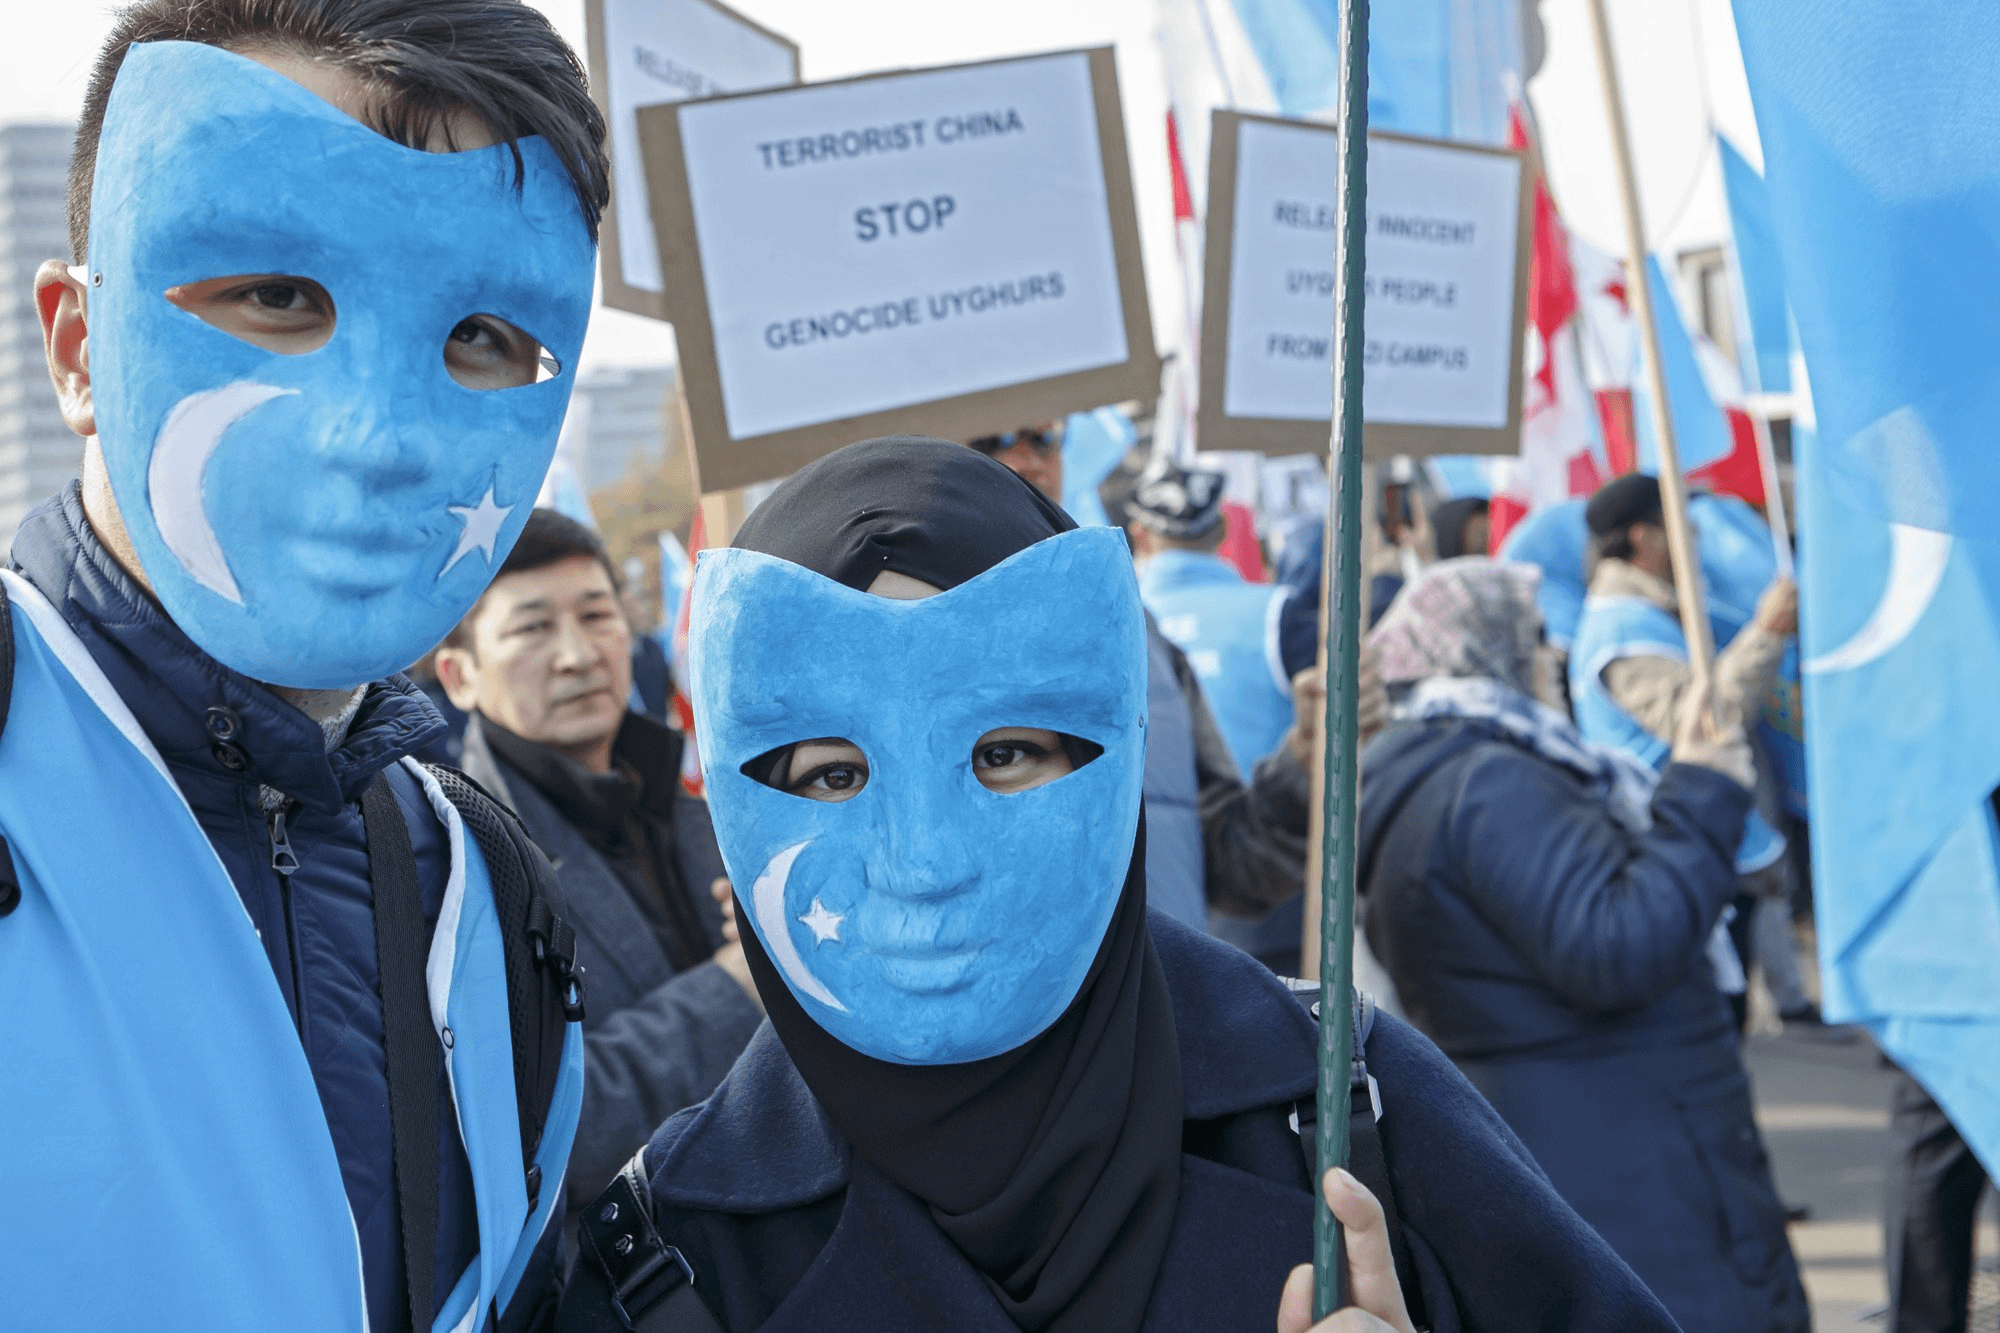 How Detainment of Uyghur Muslims Can Lead to Violent Extremism